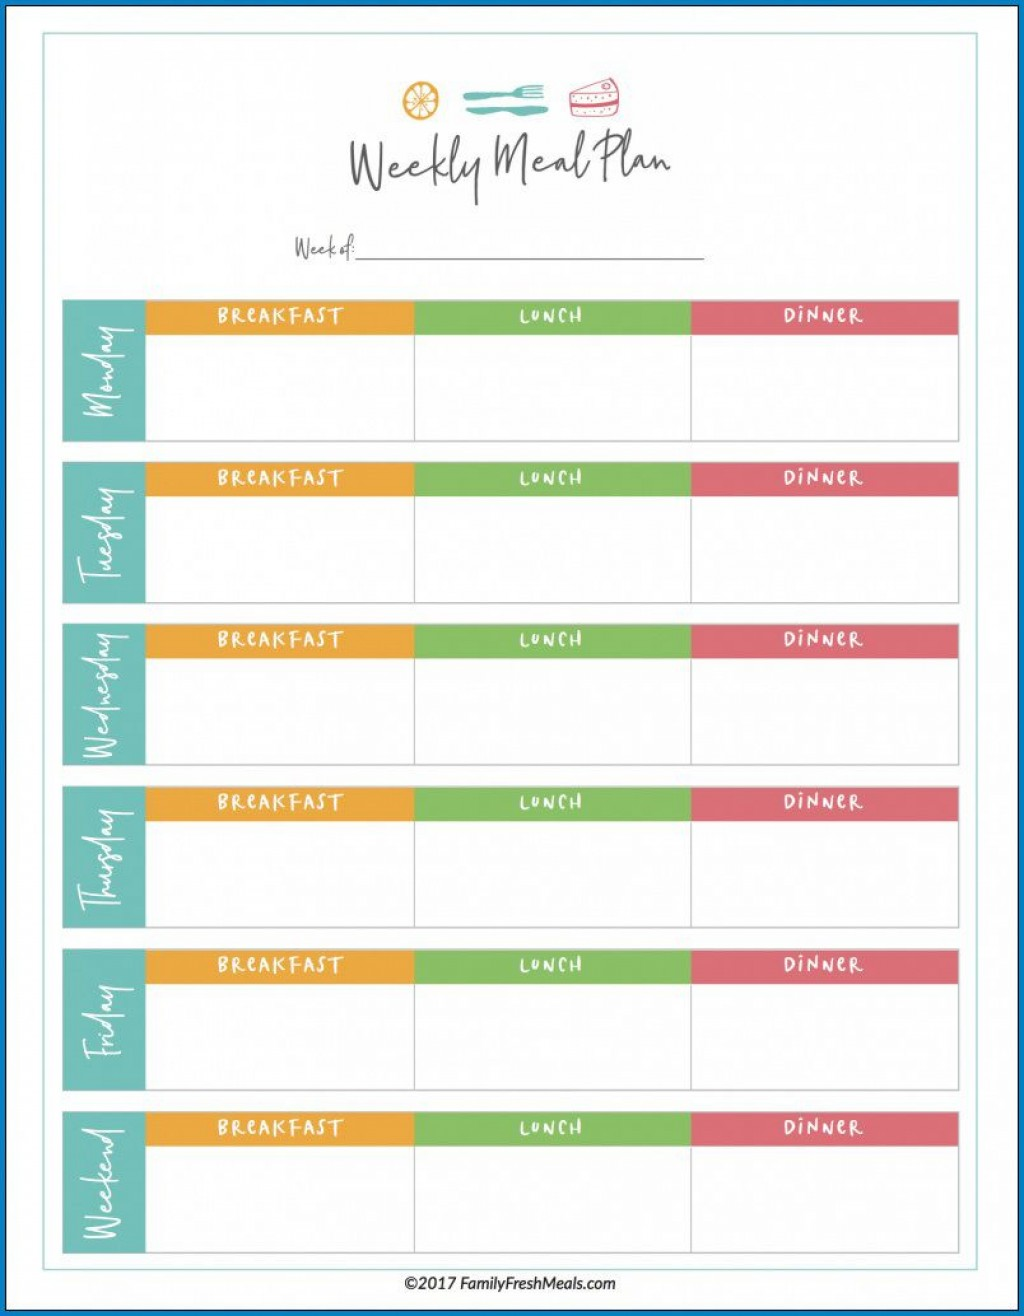 008 Unique Weekly Meal Planner Template Excel Photo  Downloadable Plan EditableLarge